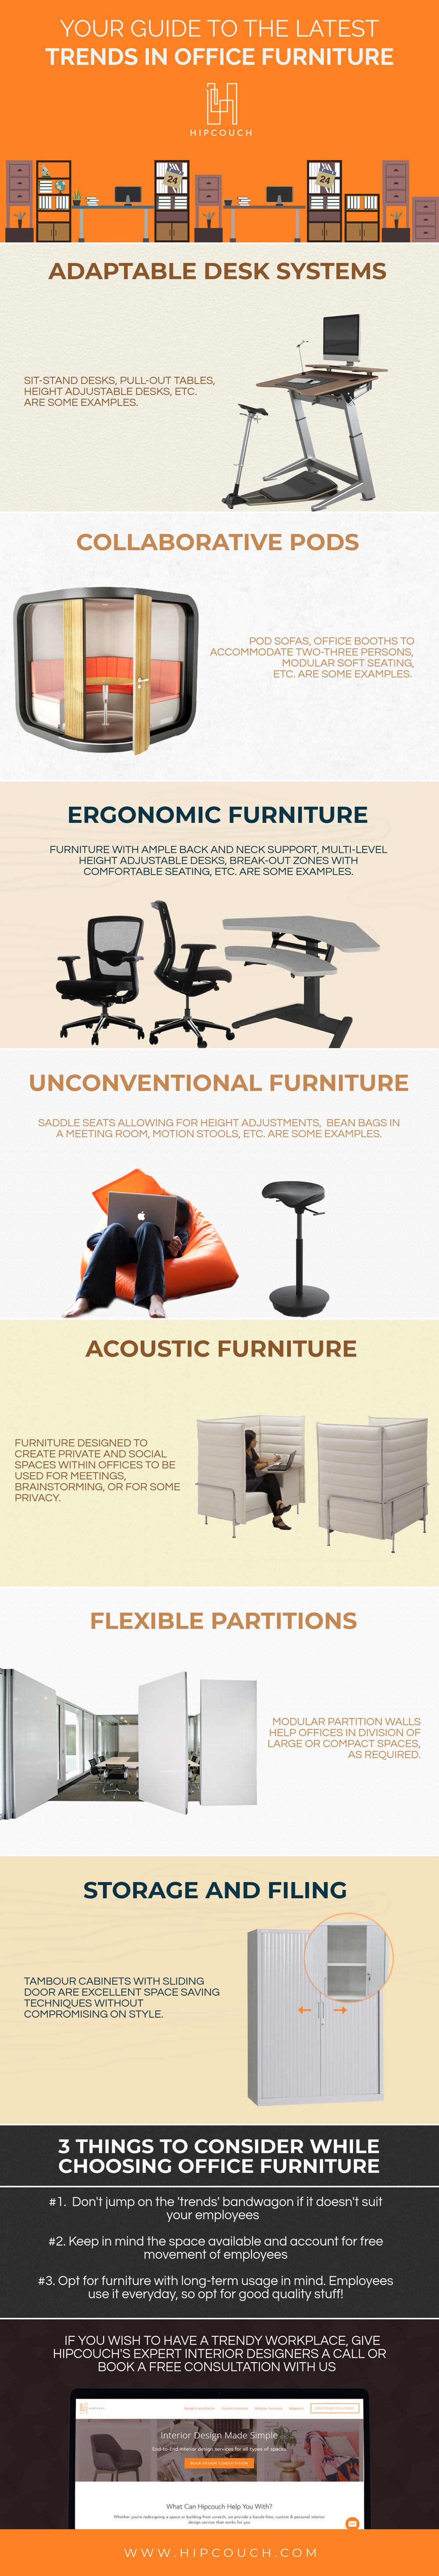 Office-Furniture-Trends.jpg